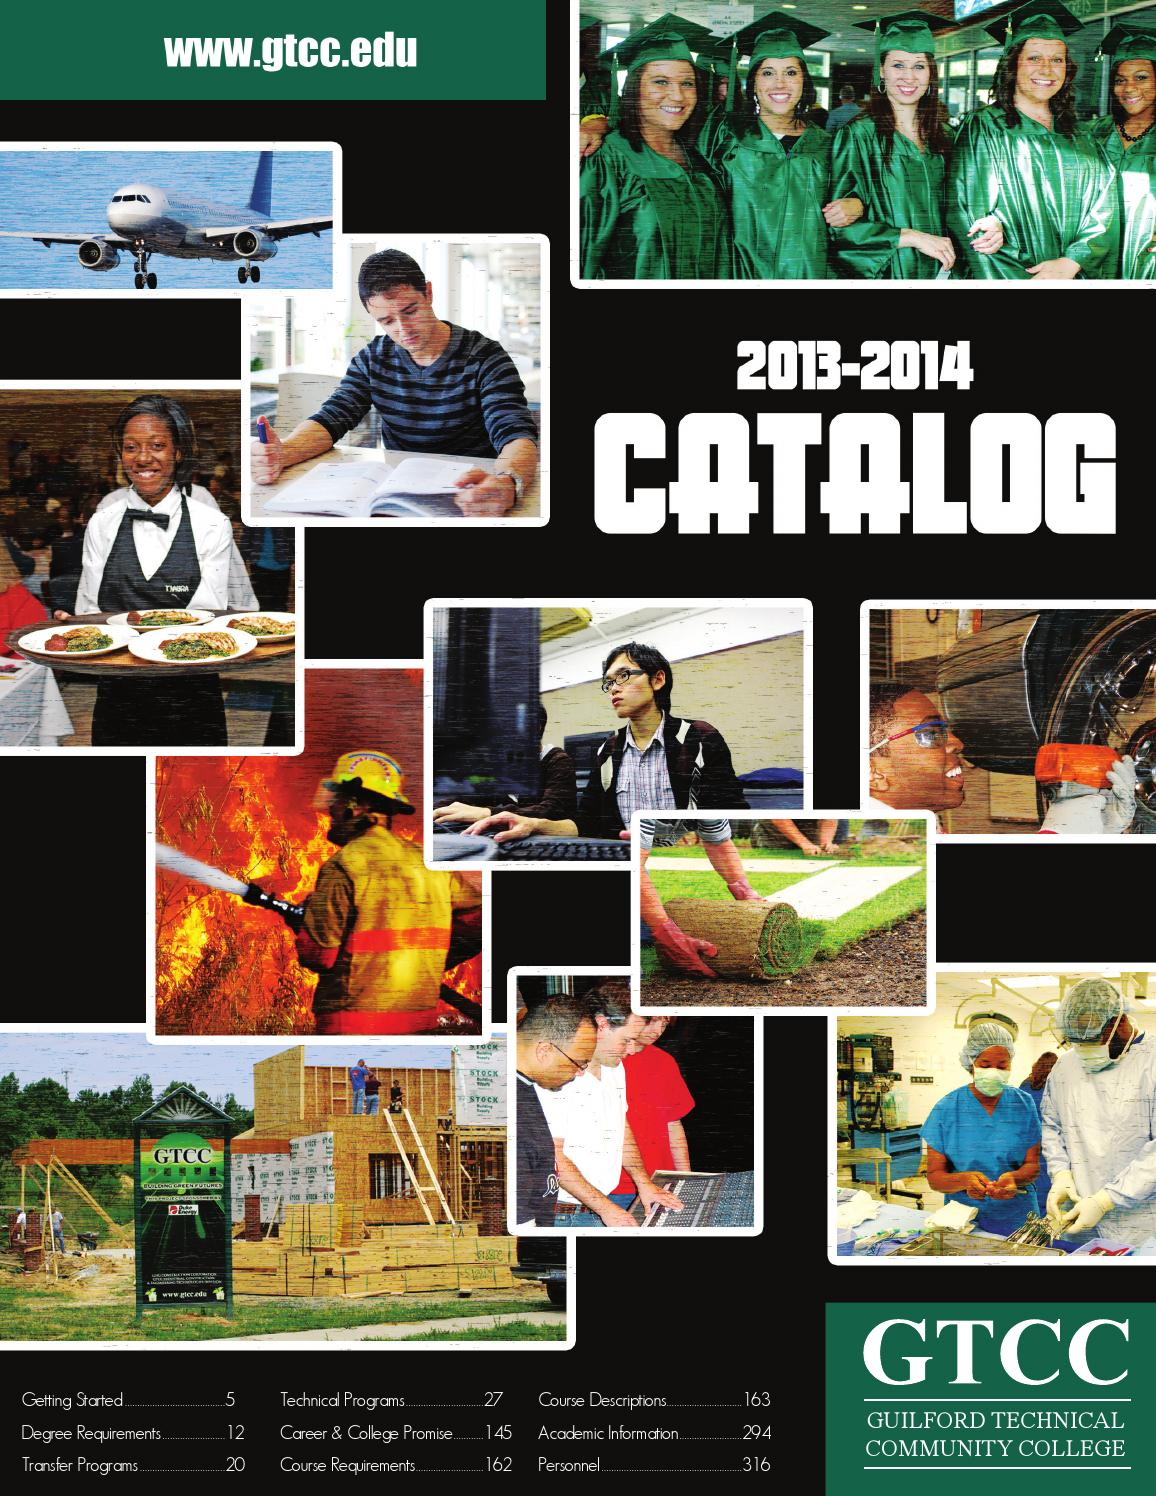 Gtcc catalog 2013 2014 by guilford technical community college issuu fandeluxe Choice Image